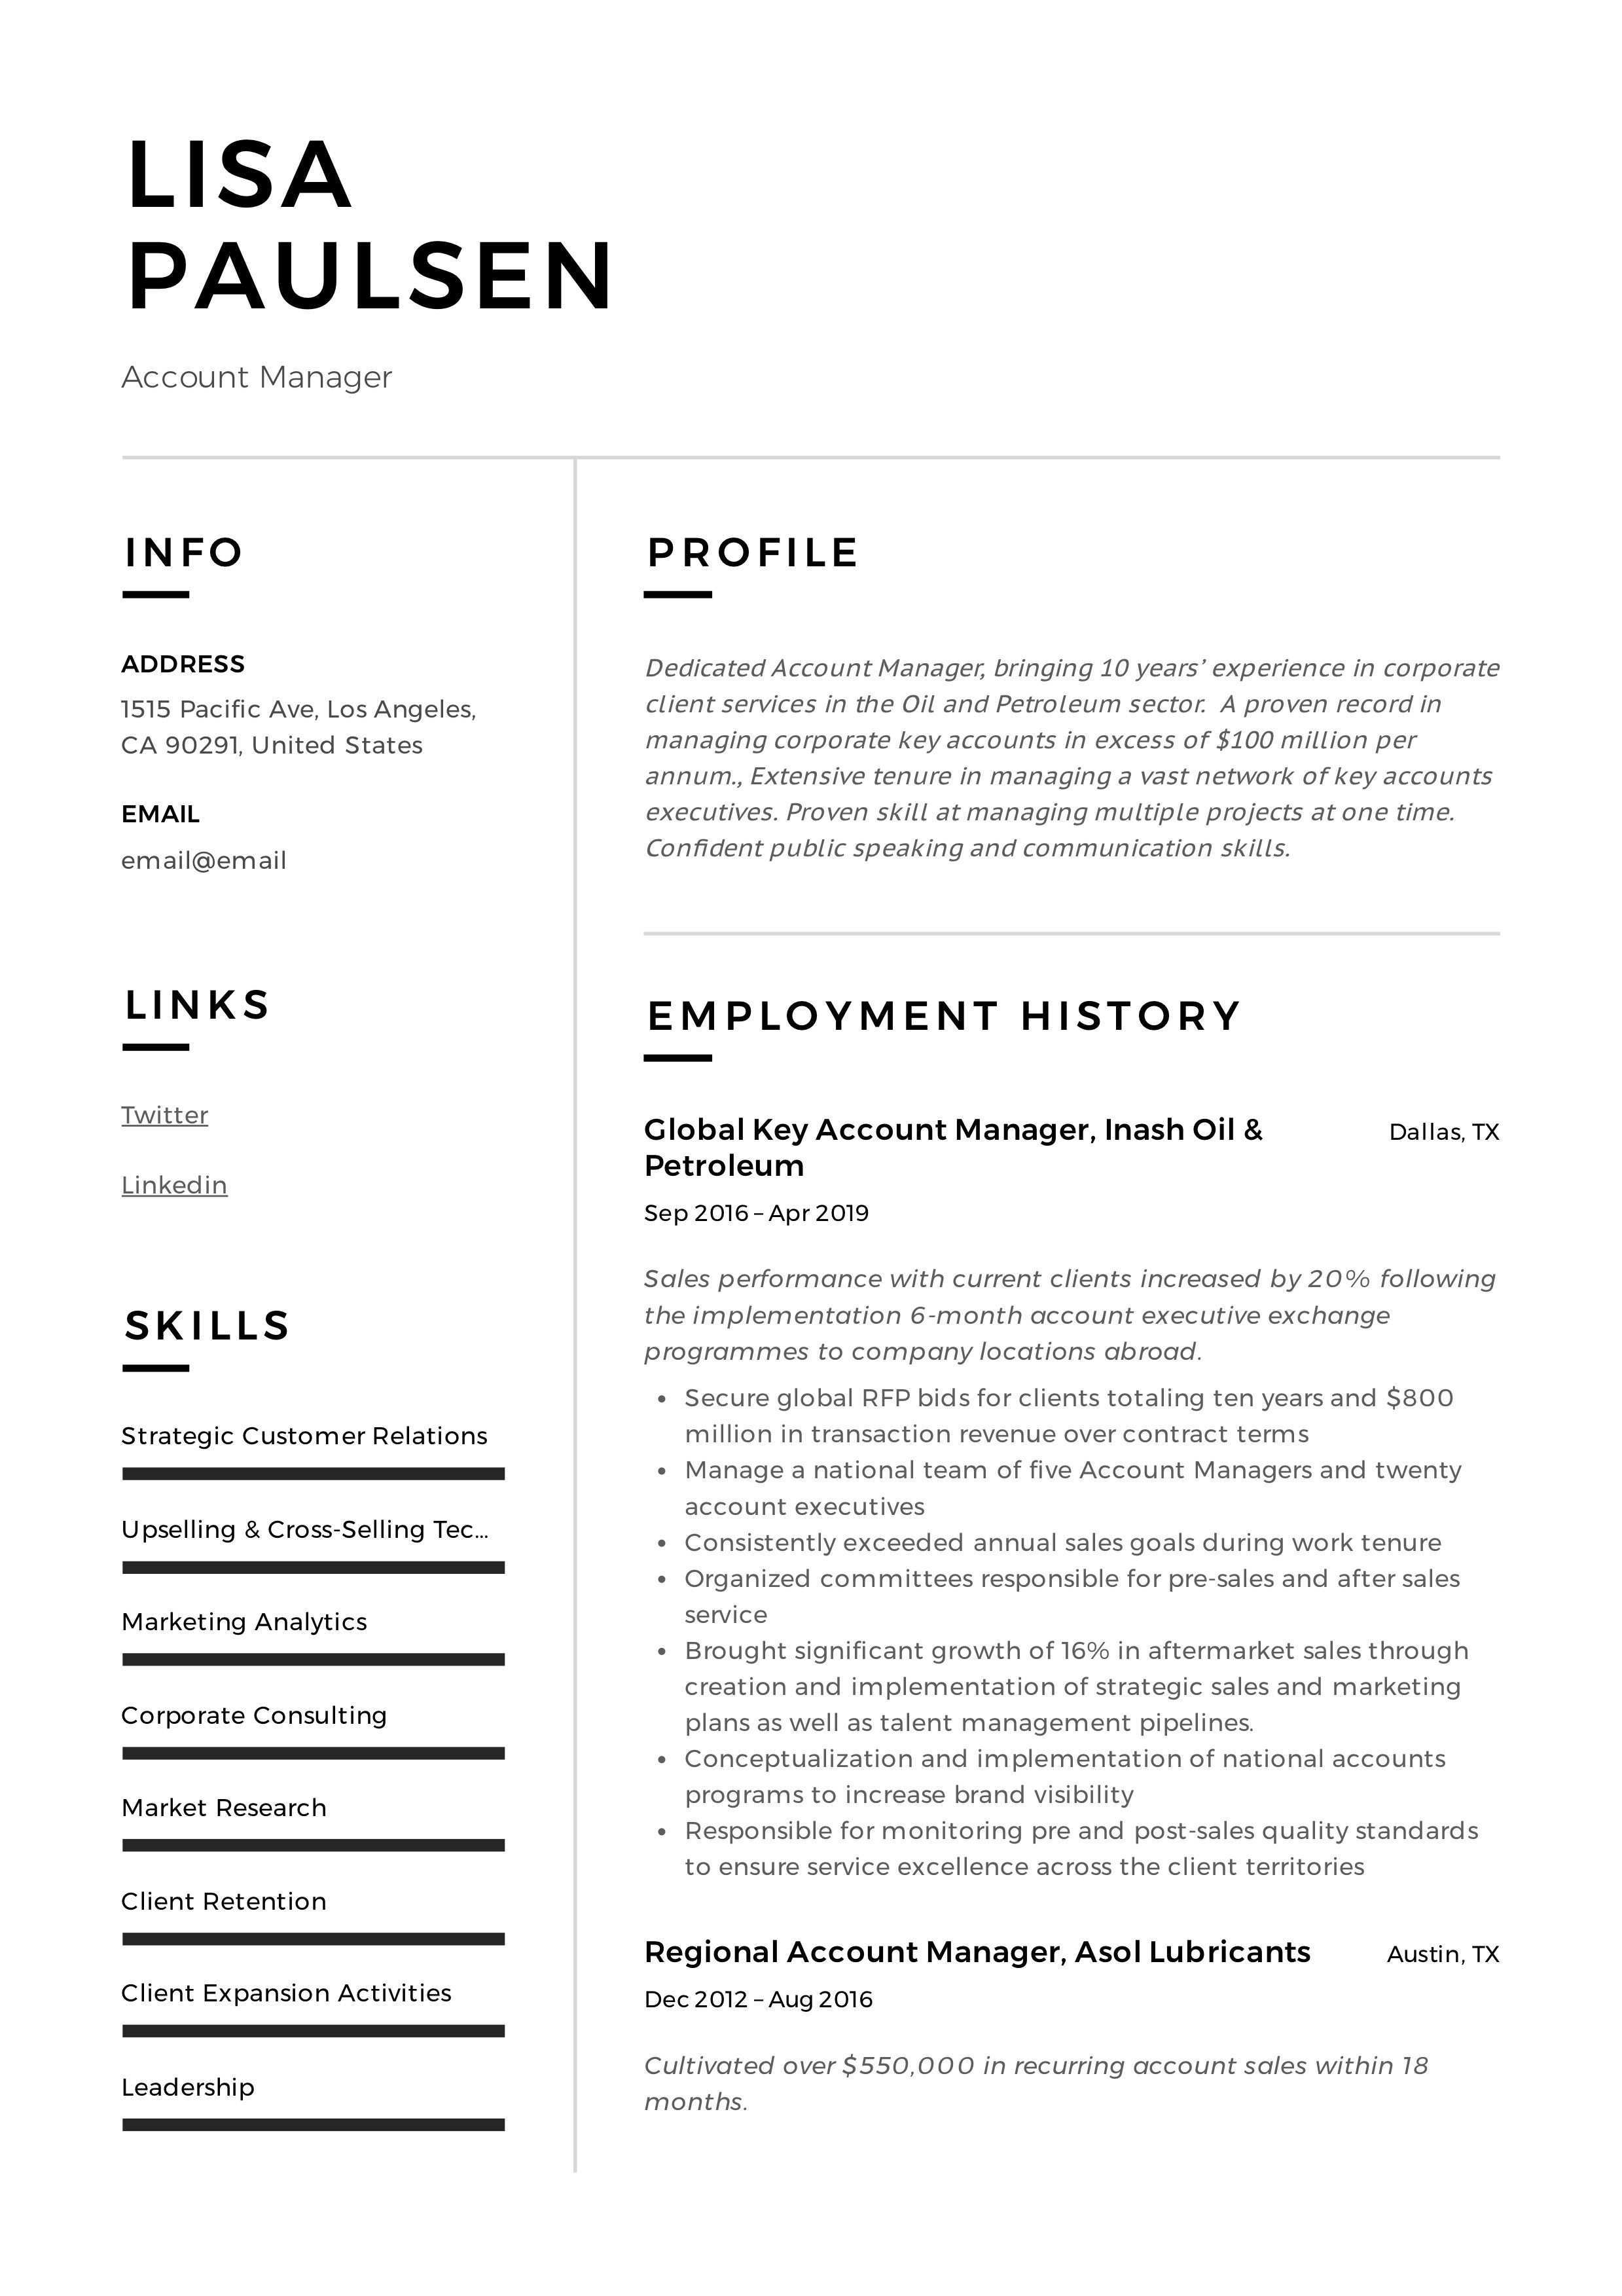 Account Manager Resume Template Manager Resume Management Guided Writing